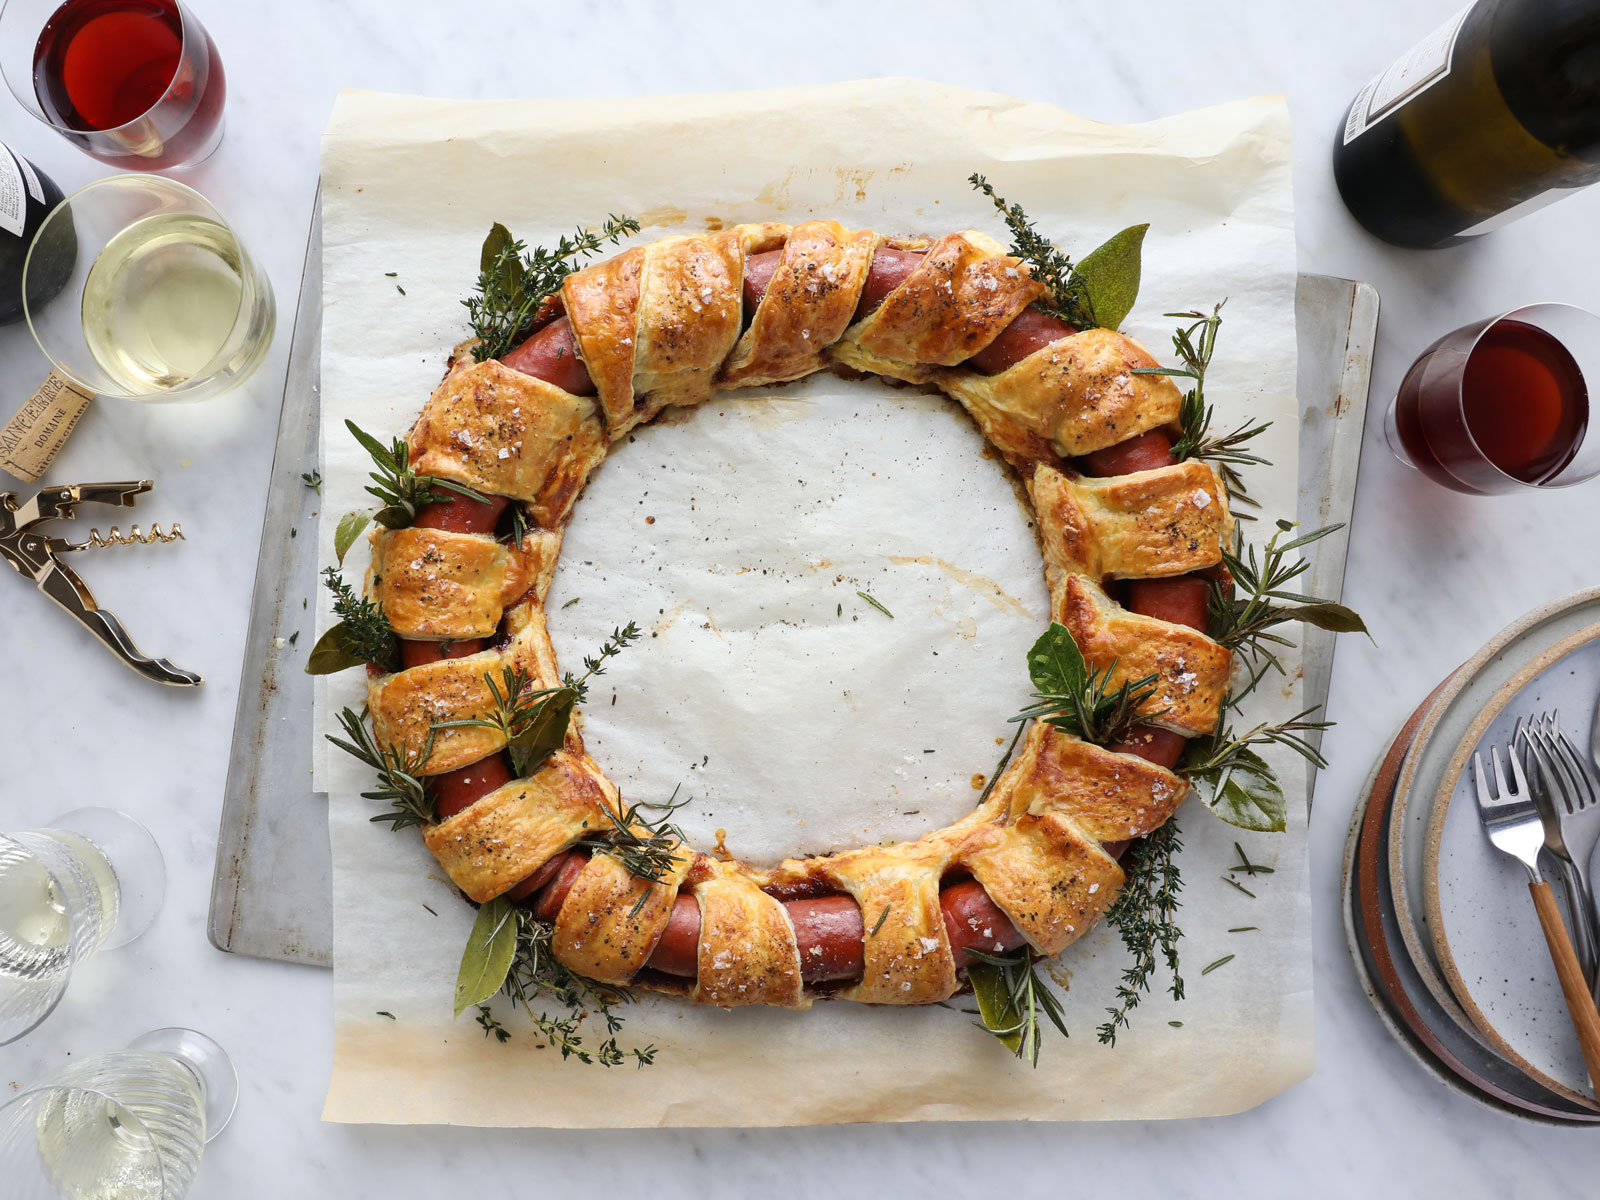 Smoked Sausage Wreath